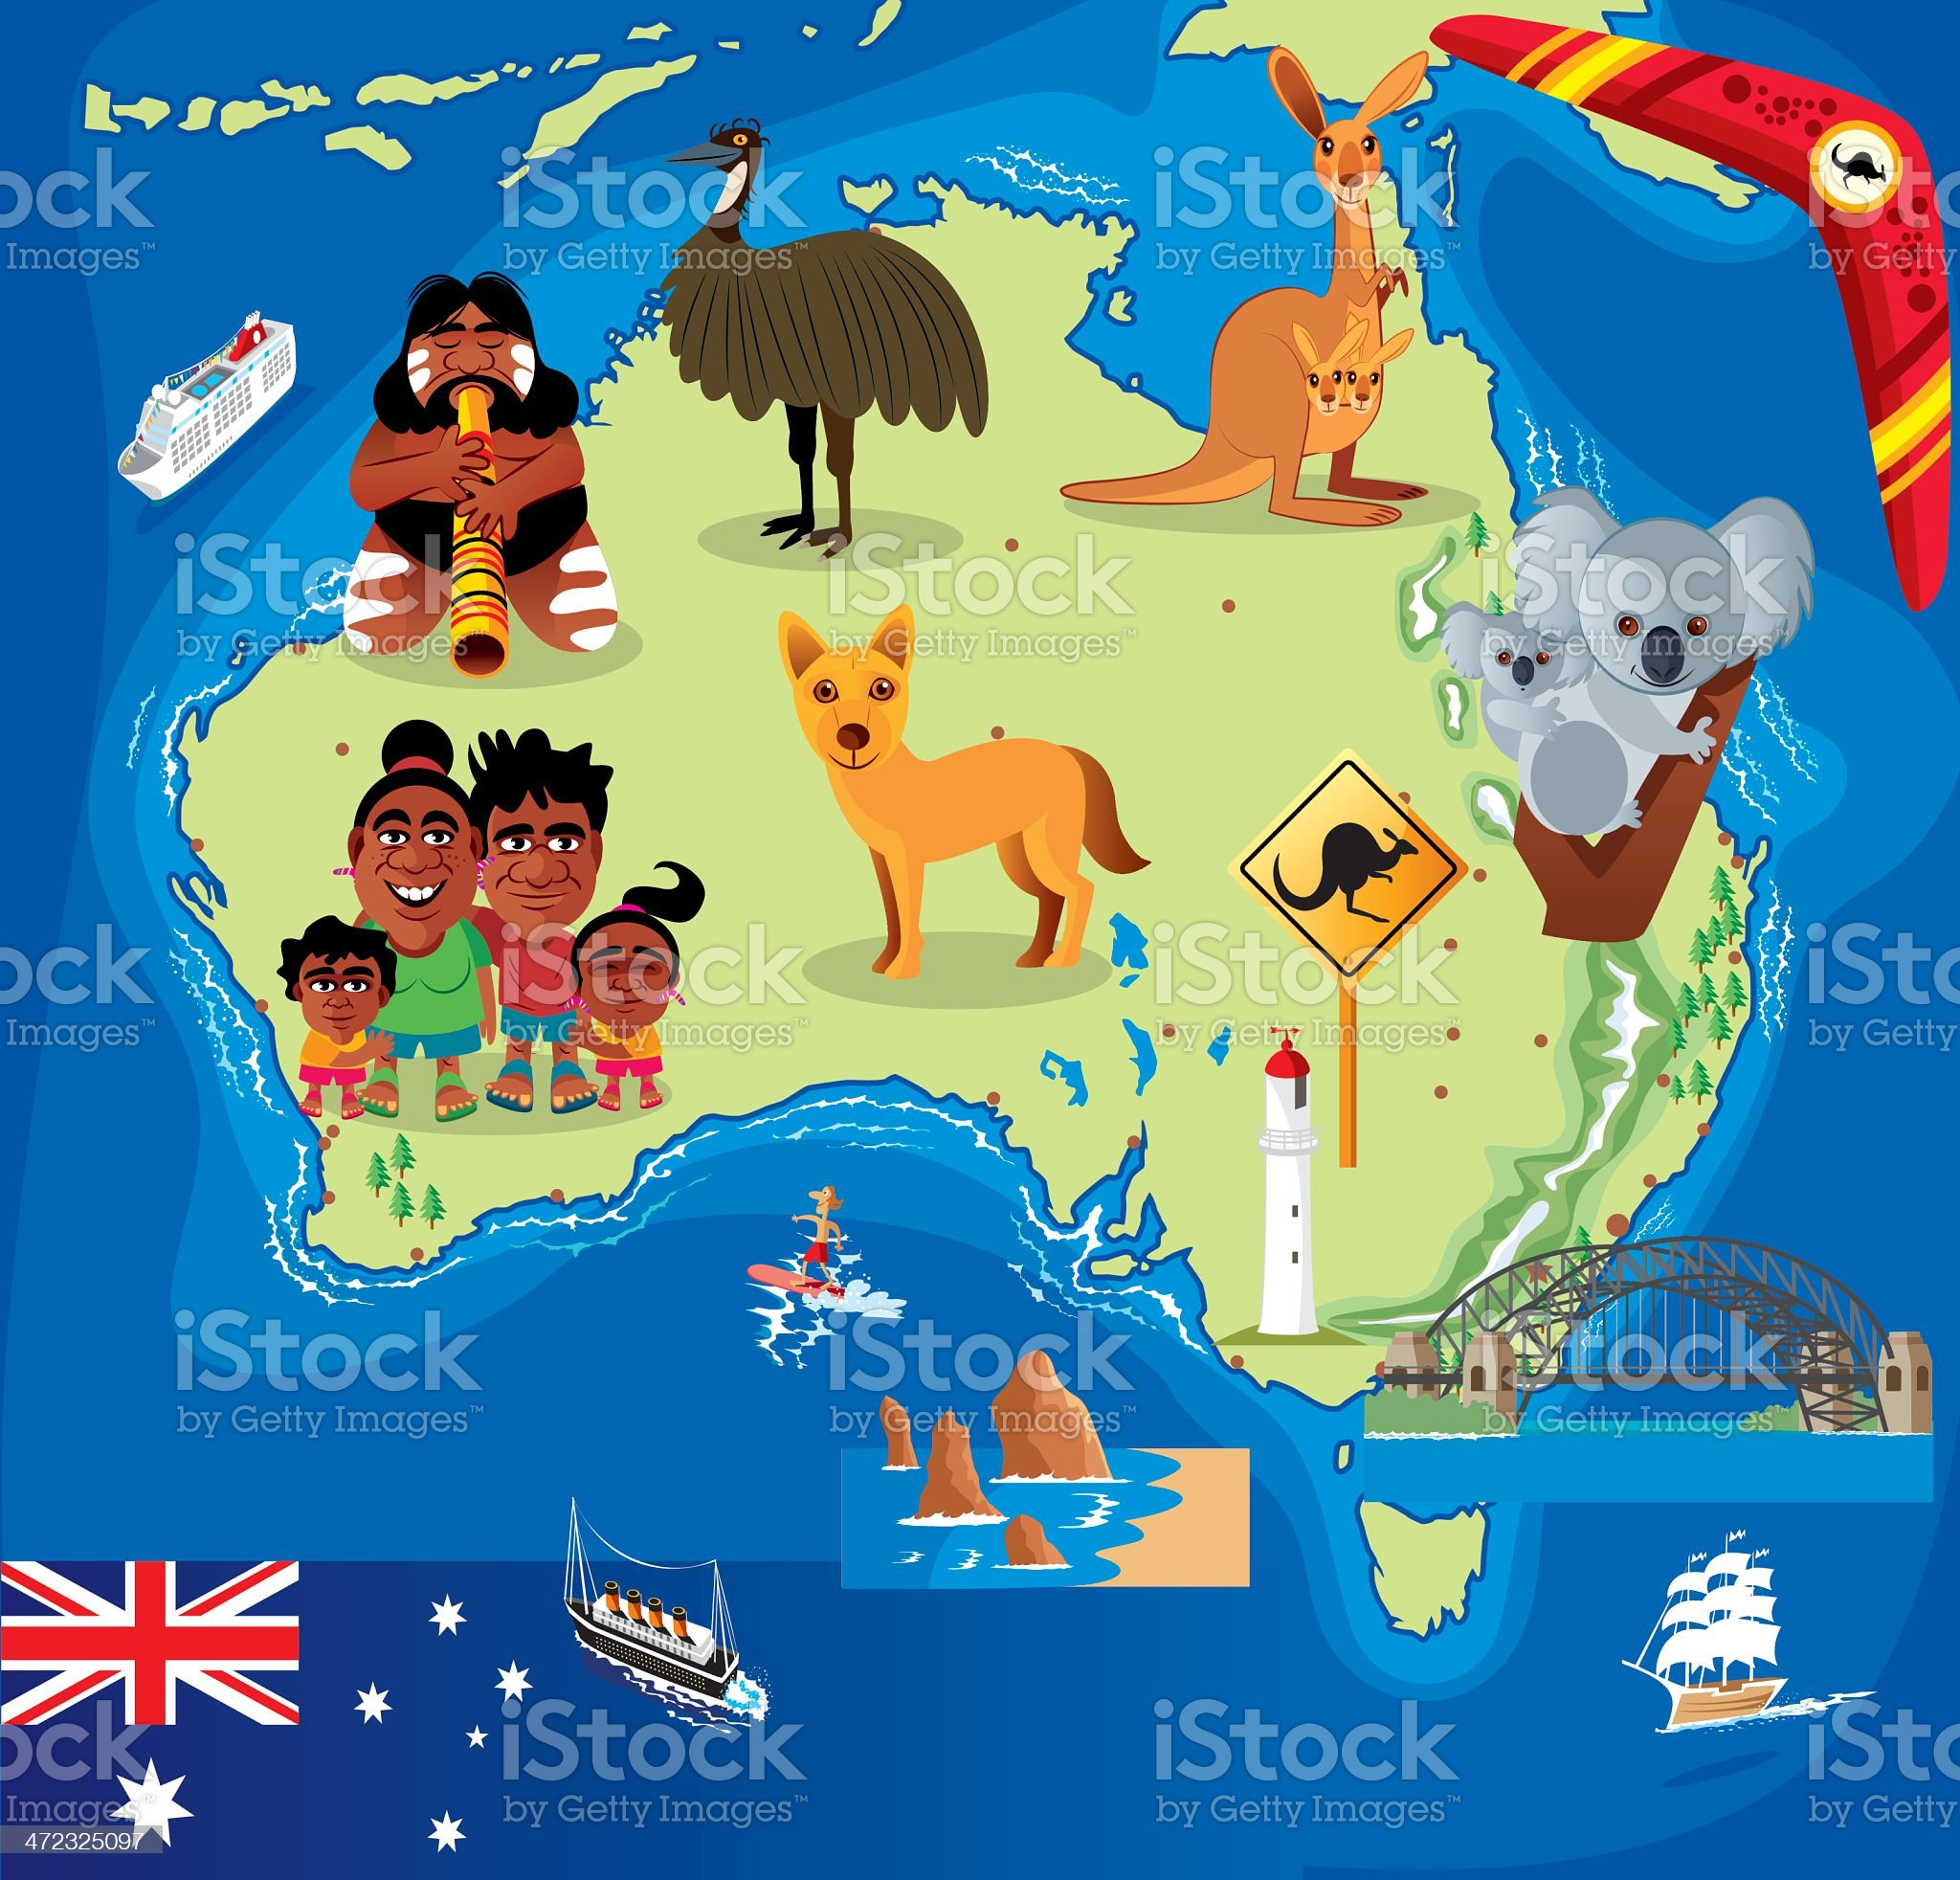 Cartoon map of Australia royalty-free stock vector art